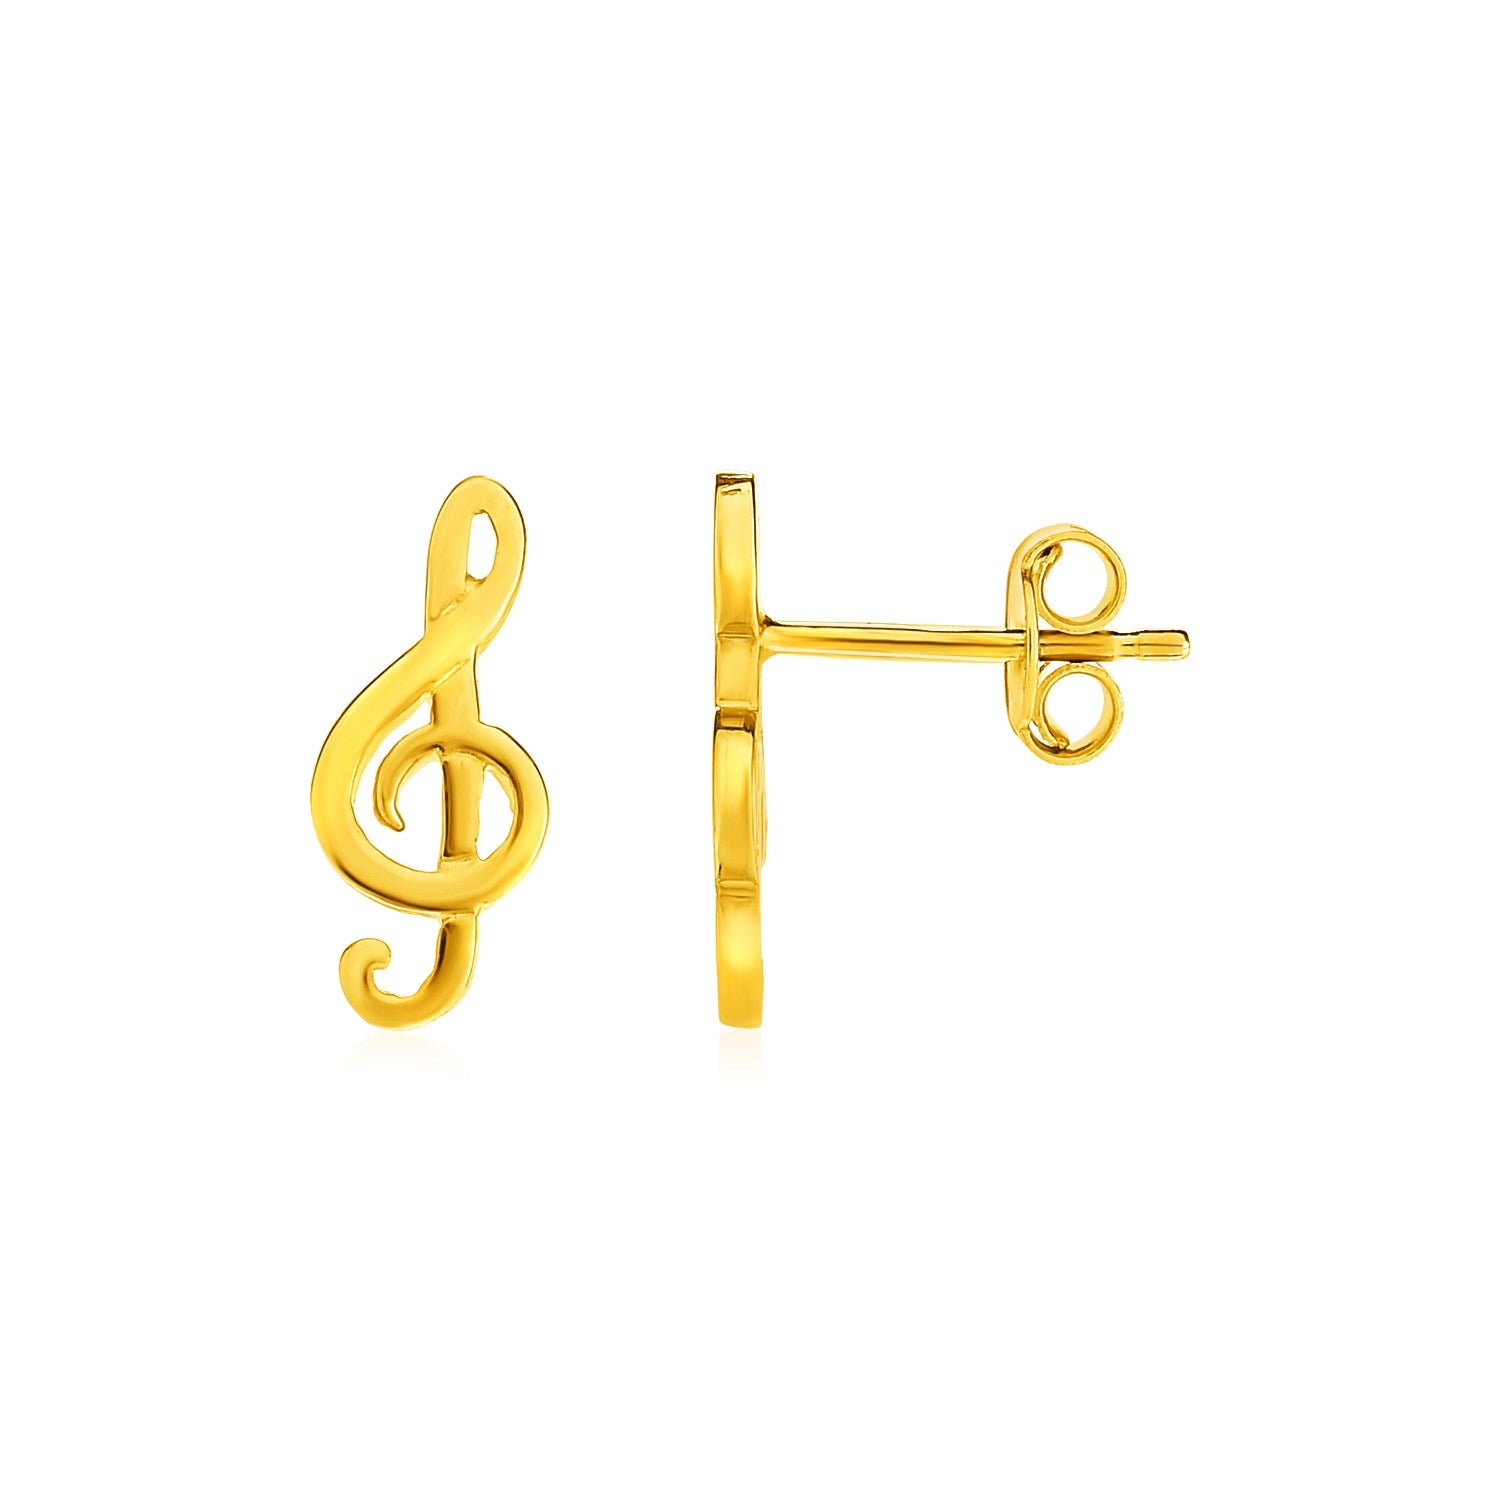 14k Yellow Gold Post Earrings with Treble Clefs